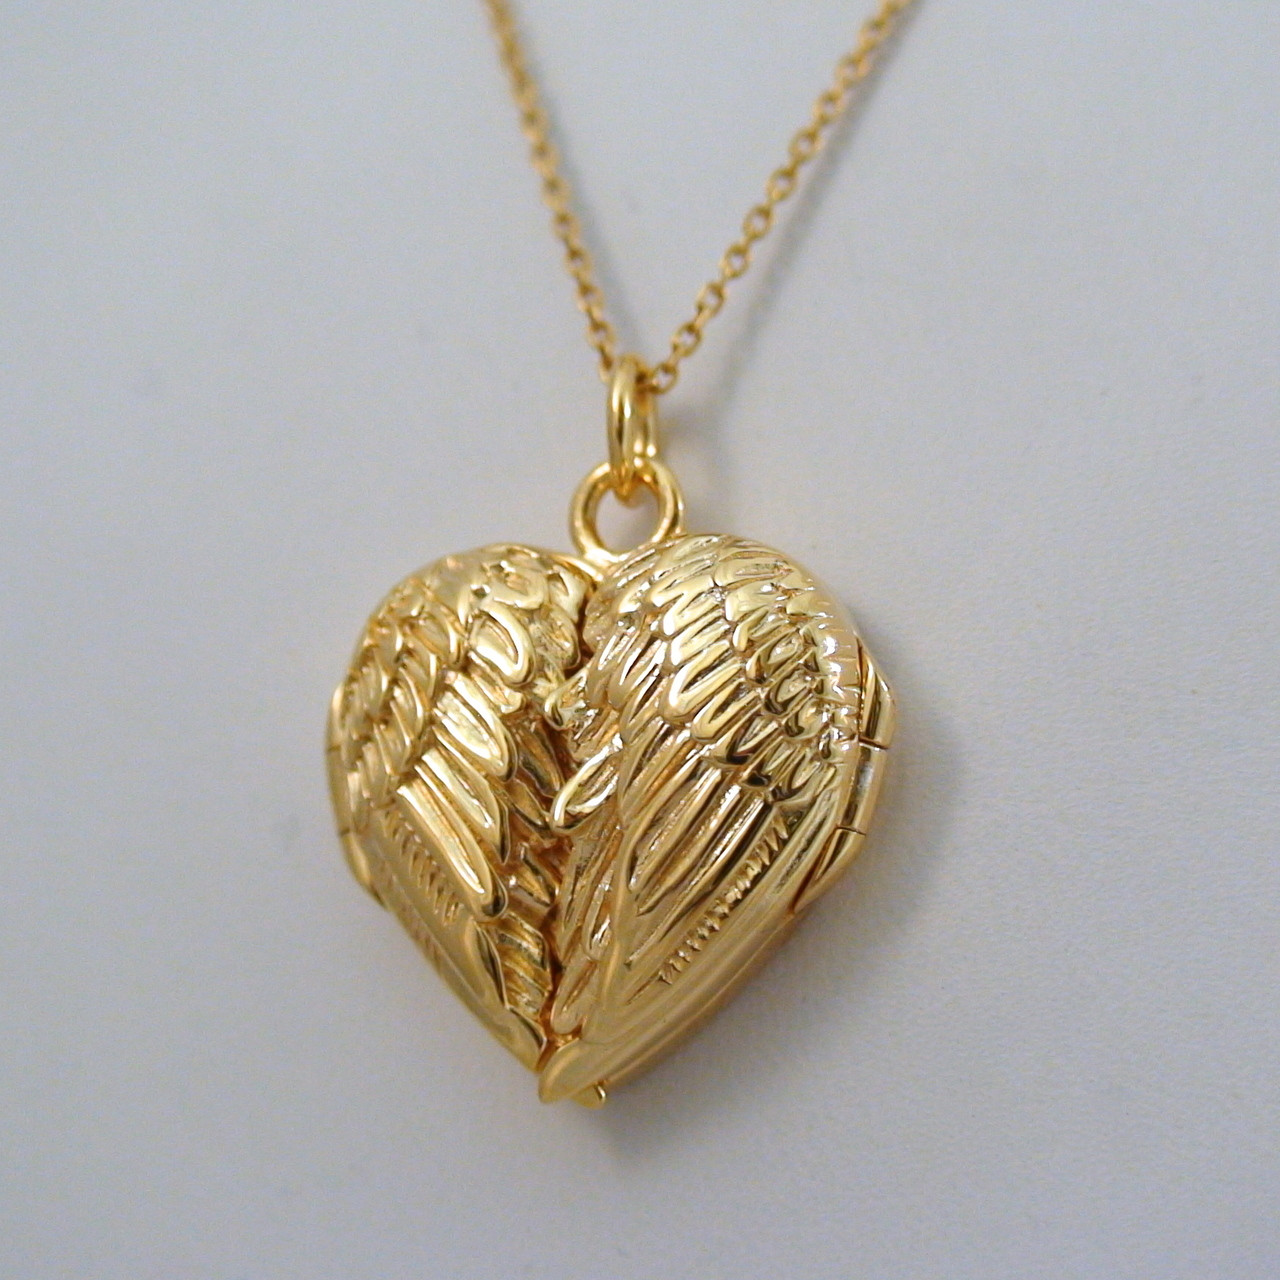 Angel Wing Locket Necklace  14k Gold Plate Sterling Silver